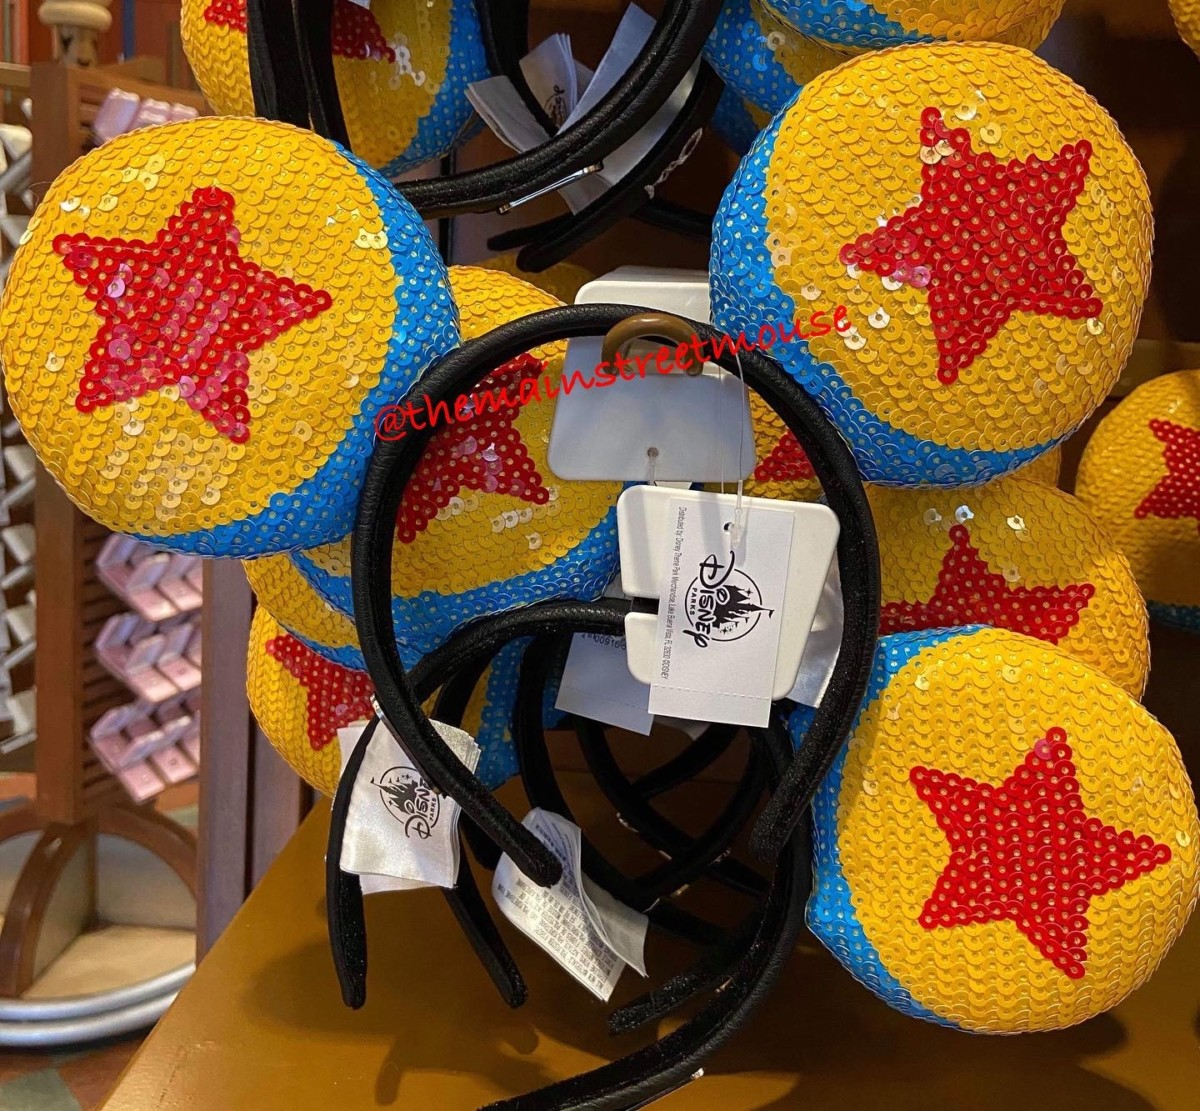 New Pixar Mouse Ears from Loungefly 8